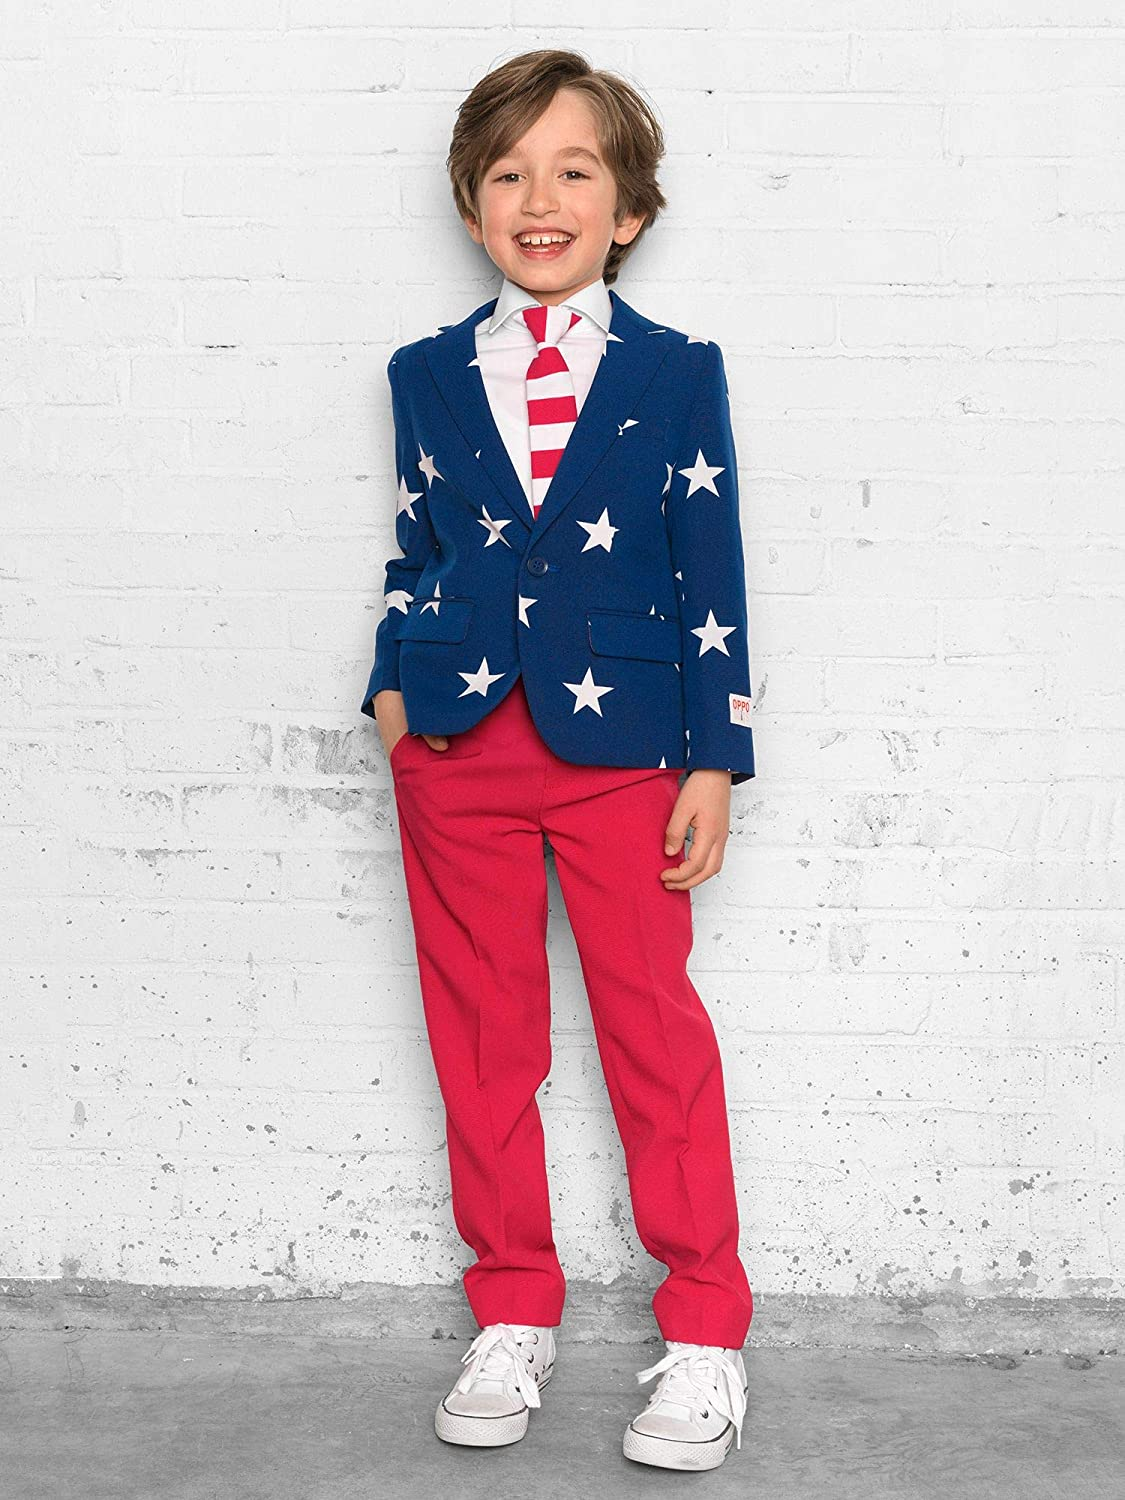 Pants and Tie in Funny Designs OppoSuits Crazy Suits for Boys Aged 2-8 Years in Different Prints Comes with Jacket